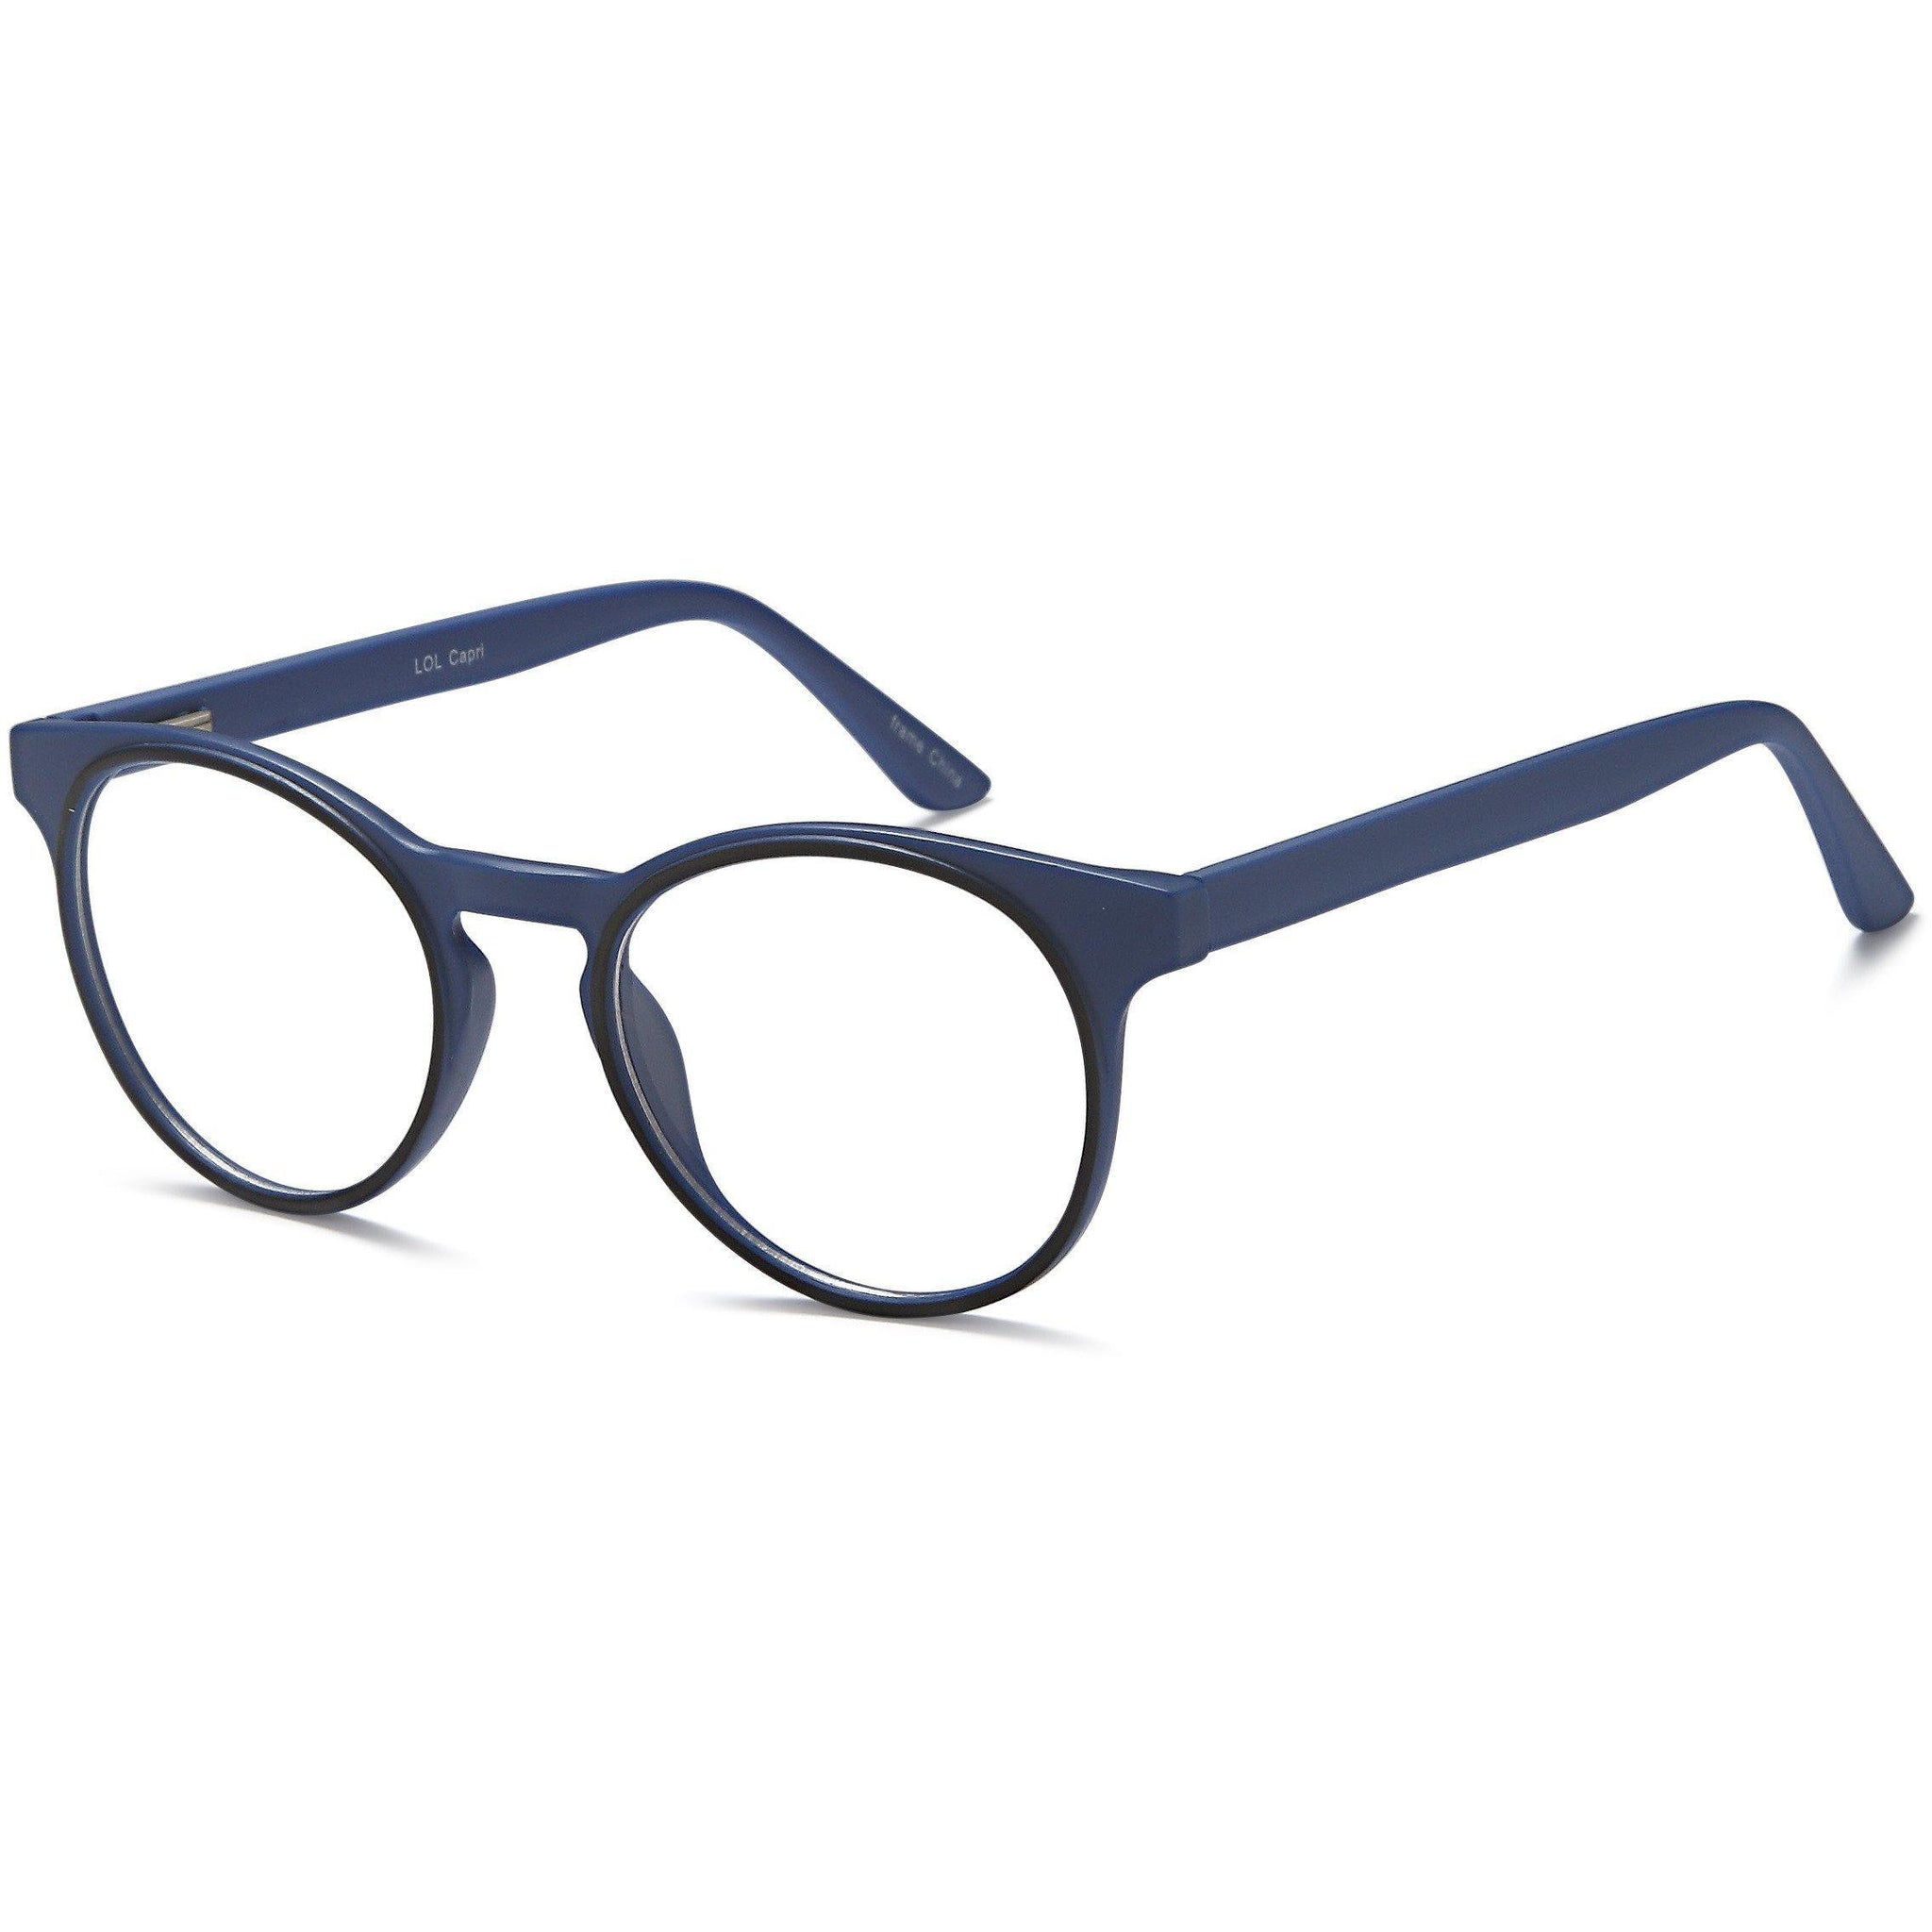 GEN Y Prescription Glasses LOL Eyeglasses Frame